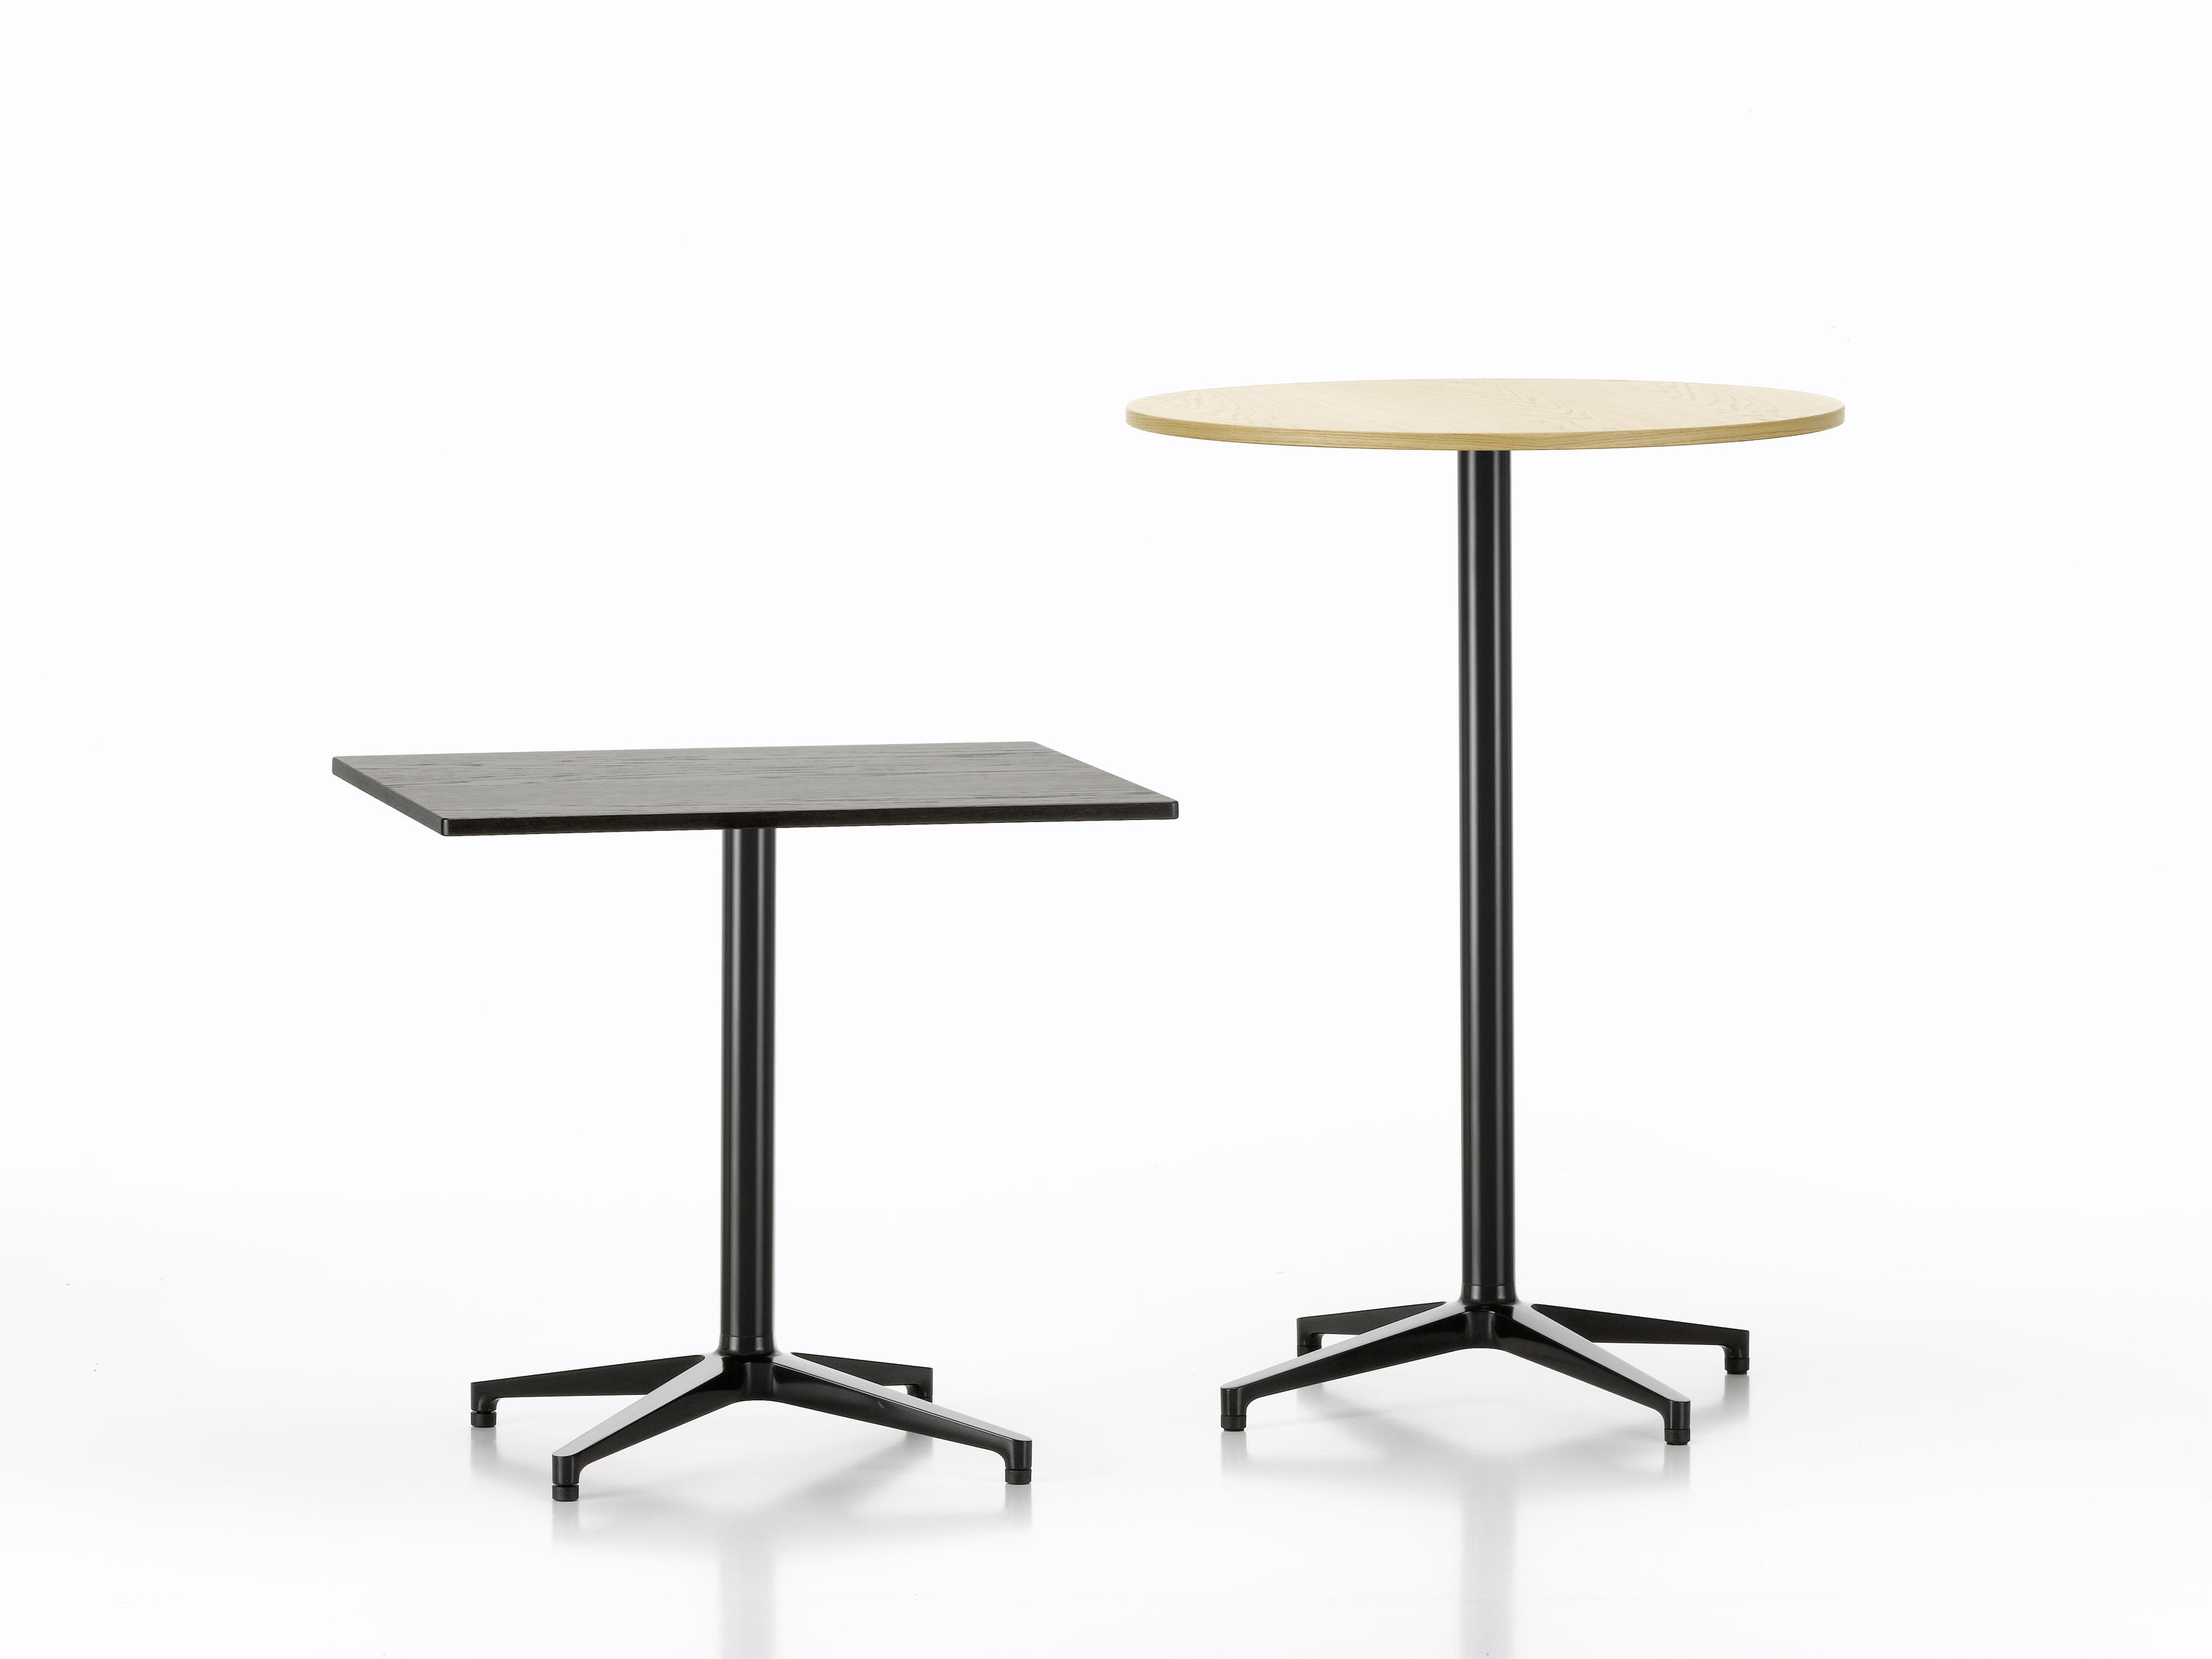 Vitra Table Bistro Table Standing Tables From Vitra Architonic